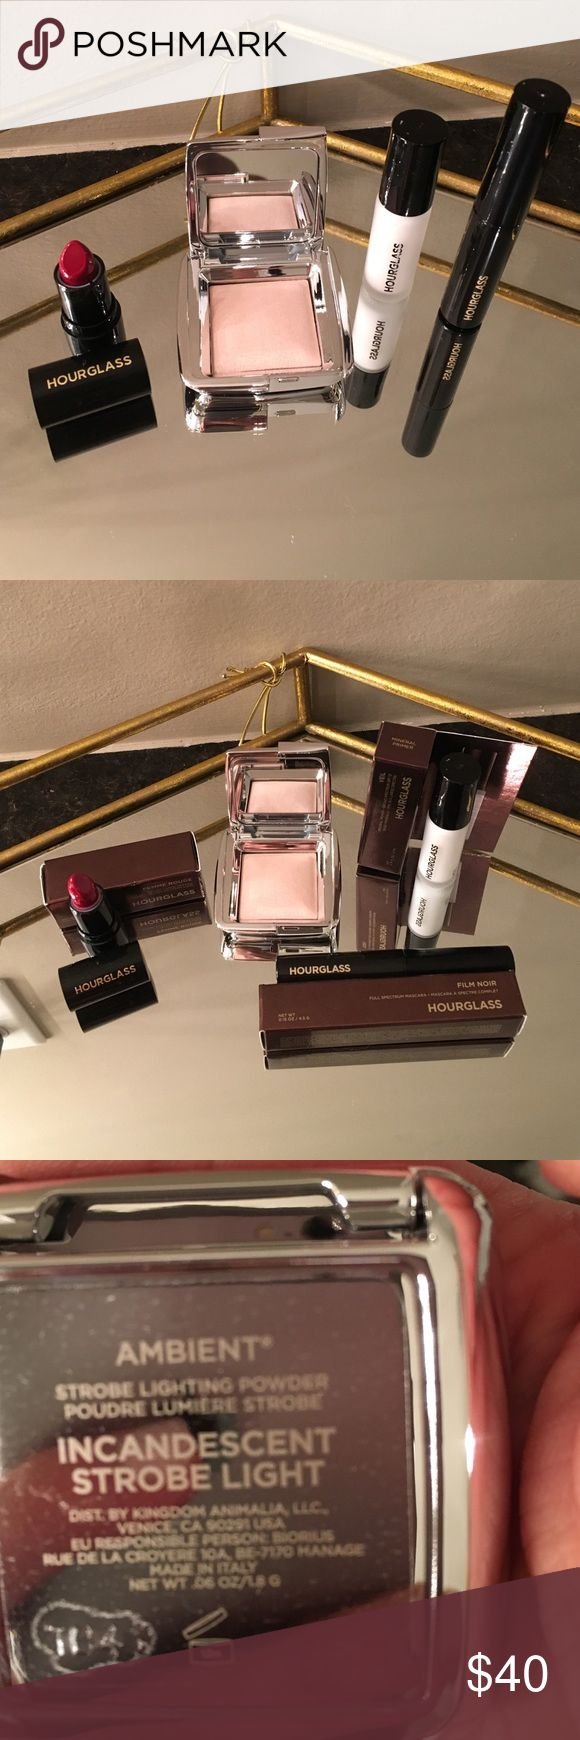 NEW HOURGLASS MINIS KIT BRAND NEW Amazing hourglass mini kit ! 1- ambient strobe lighting powder Incandescent strobe light .06 oz, 1 -Velvet creme lipstick in Femme Rouge ( beautiful red ) , 1 - Veil mineral primer SPF 15 0.14fl.oz, 1- full spectrum mascara in Film Noir ( black )  0.15 oz. all brand new not used . I have to mention that the lipstick has a little KNICK on the side from putting the cap back on , Nothing major but I like to mention my listings throughly just incase . Check out…